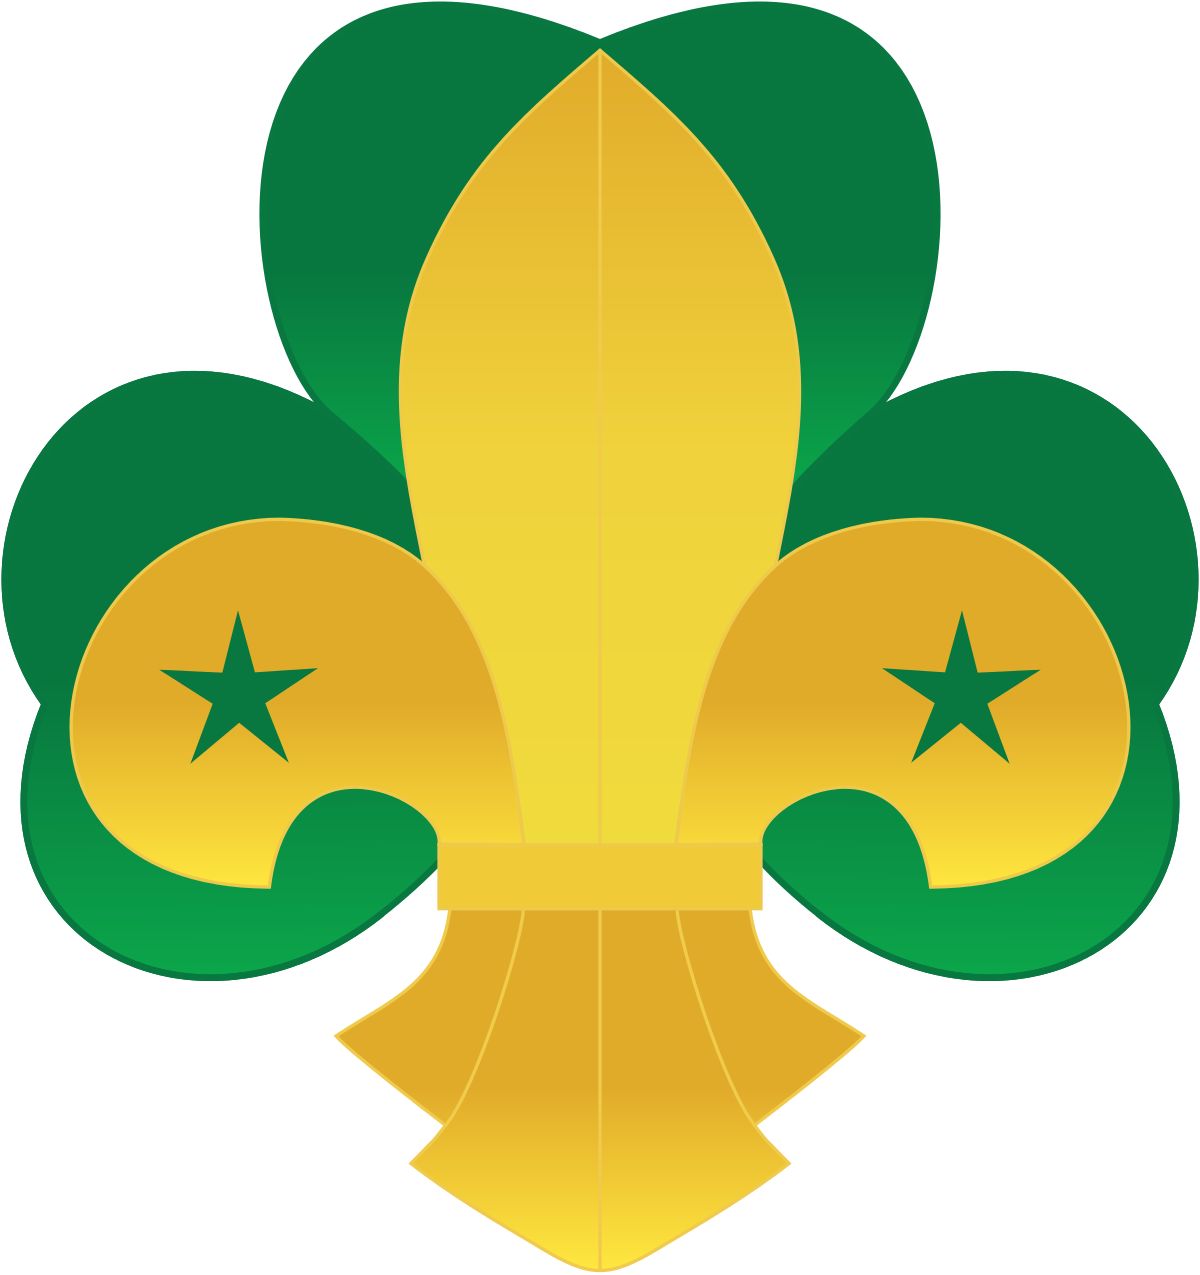 Girl Scout Symbols Free Download Best Girl Scout Symbols On